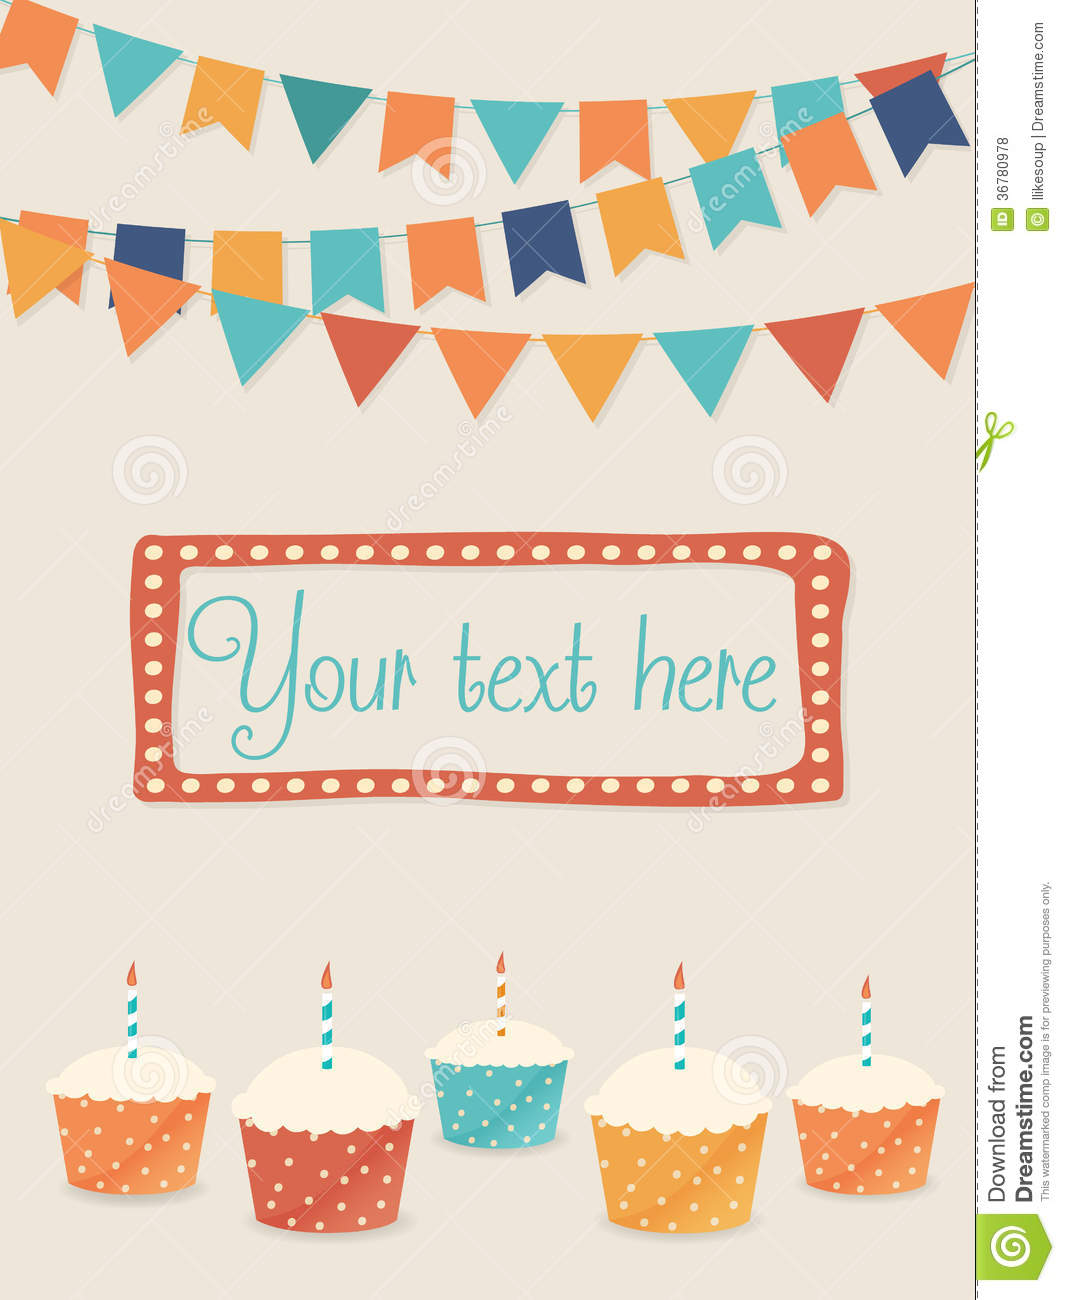 Vector Birthday Card With Party Flags And Cupcakes Royalty Free – Free Textable Birthday Cards